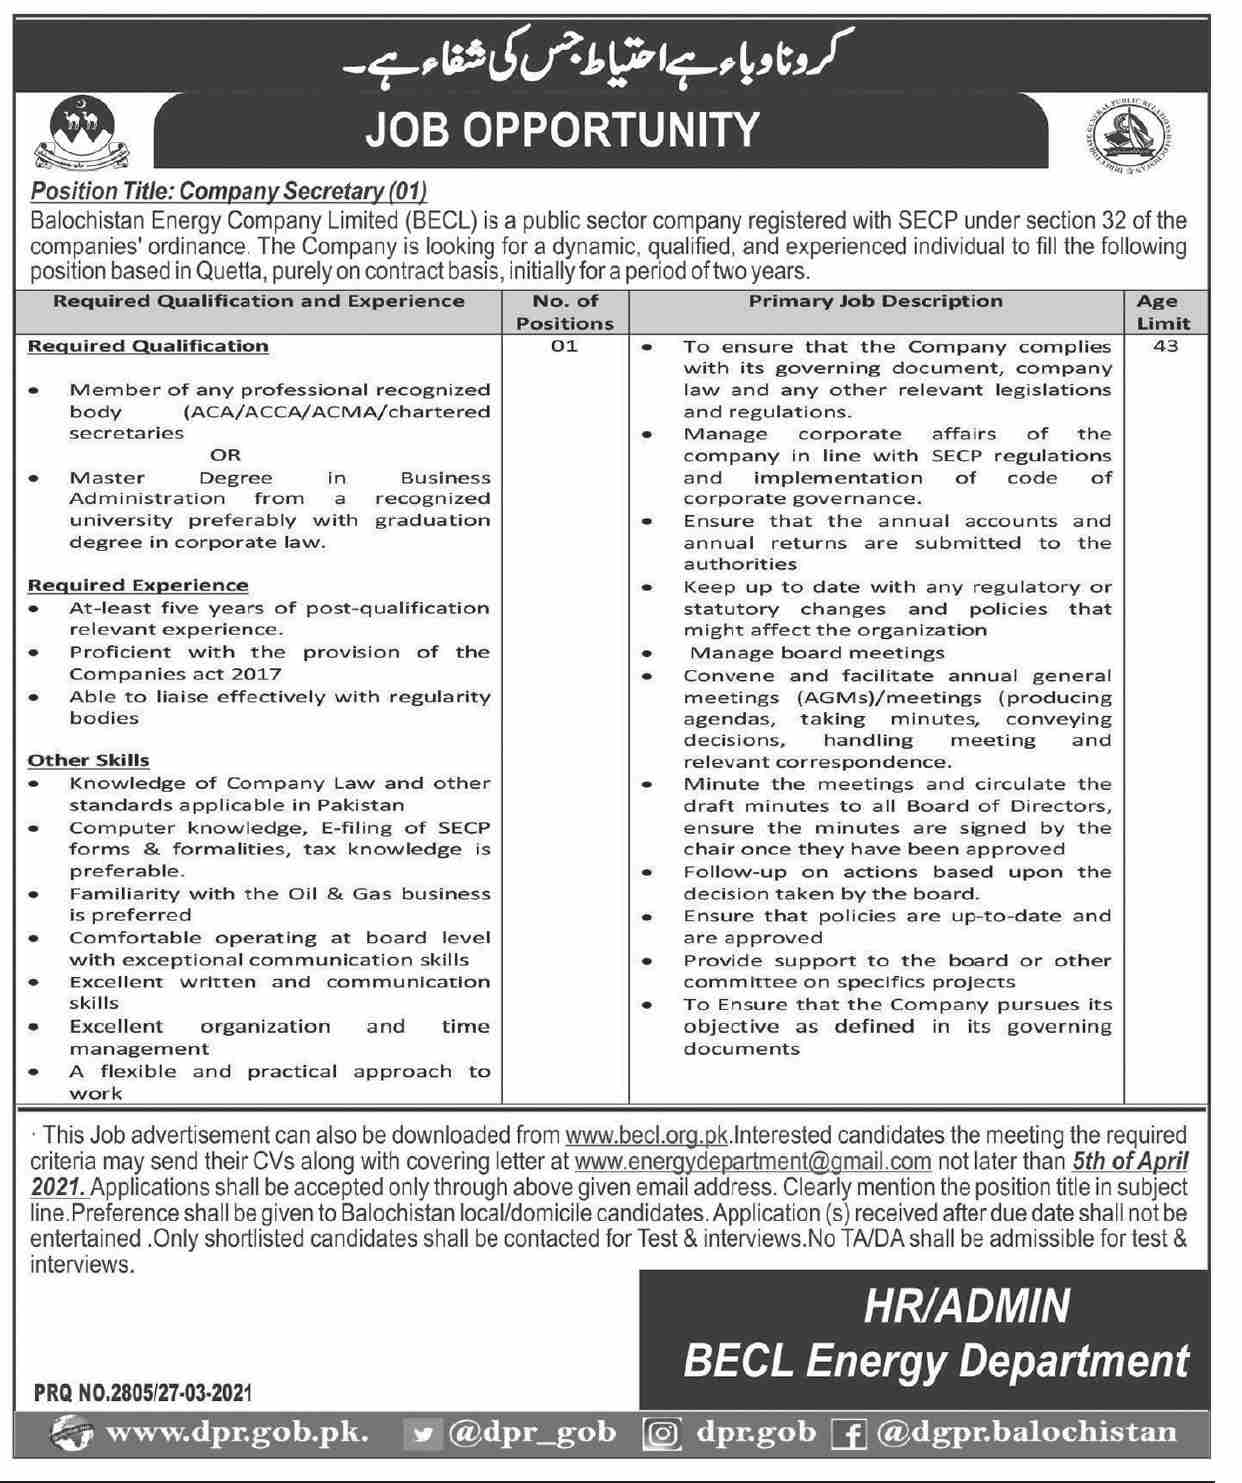 Balochistan Energy Company Limited (BECL) Jobs 2021 in Pakistan - Download Job Application Form - www.becl.org.pk - www.energydepartment@gmail.com